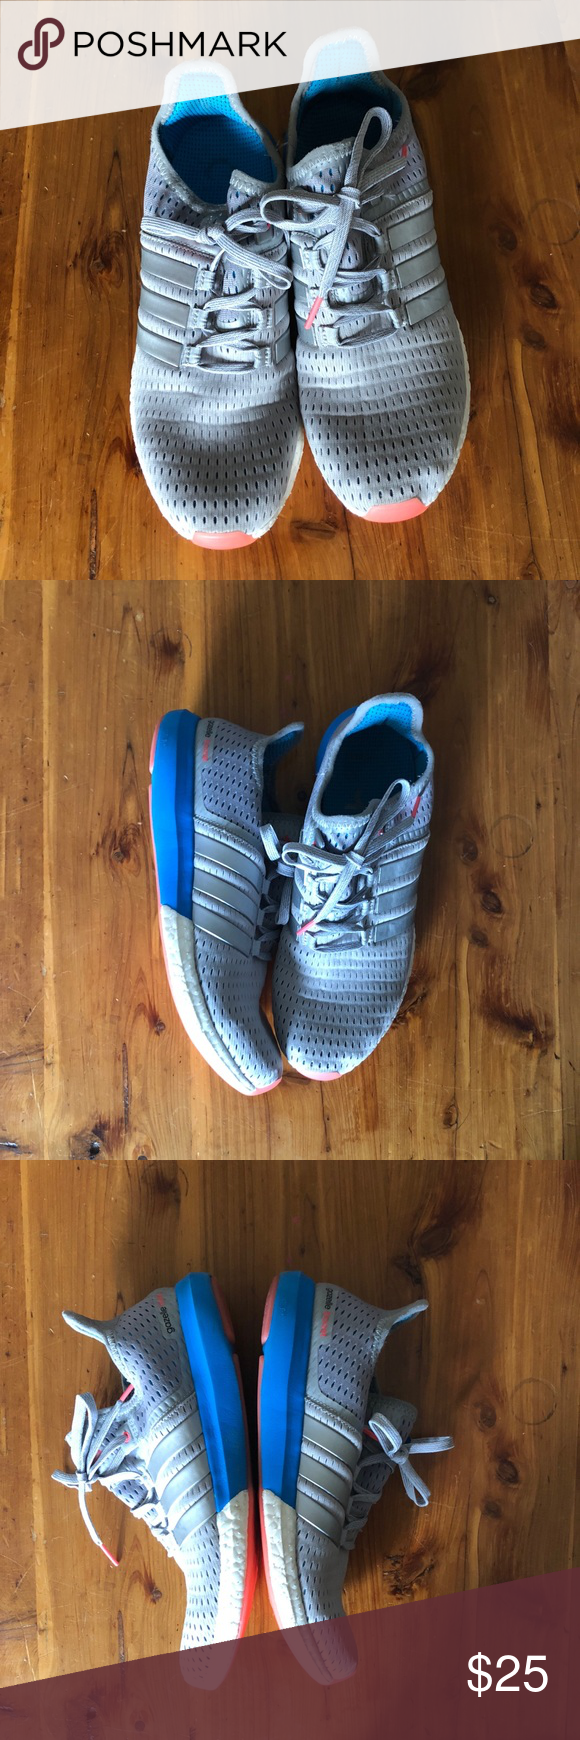 Adidas gazelle boost Size 9. Some imperfections shown in